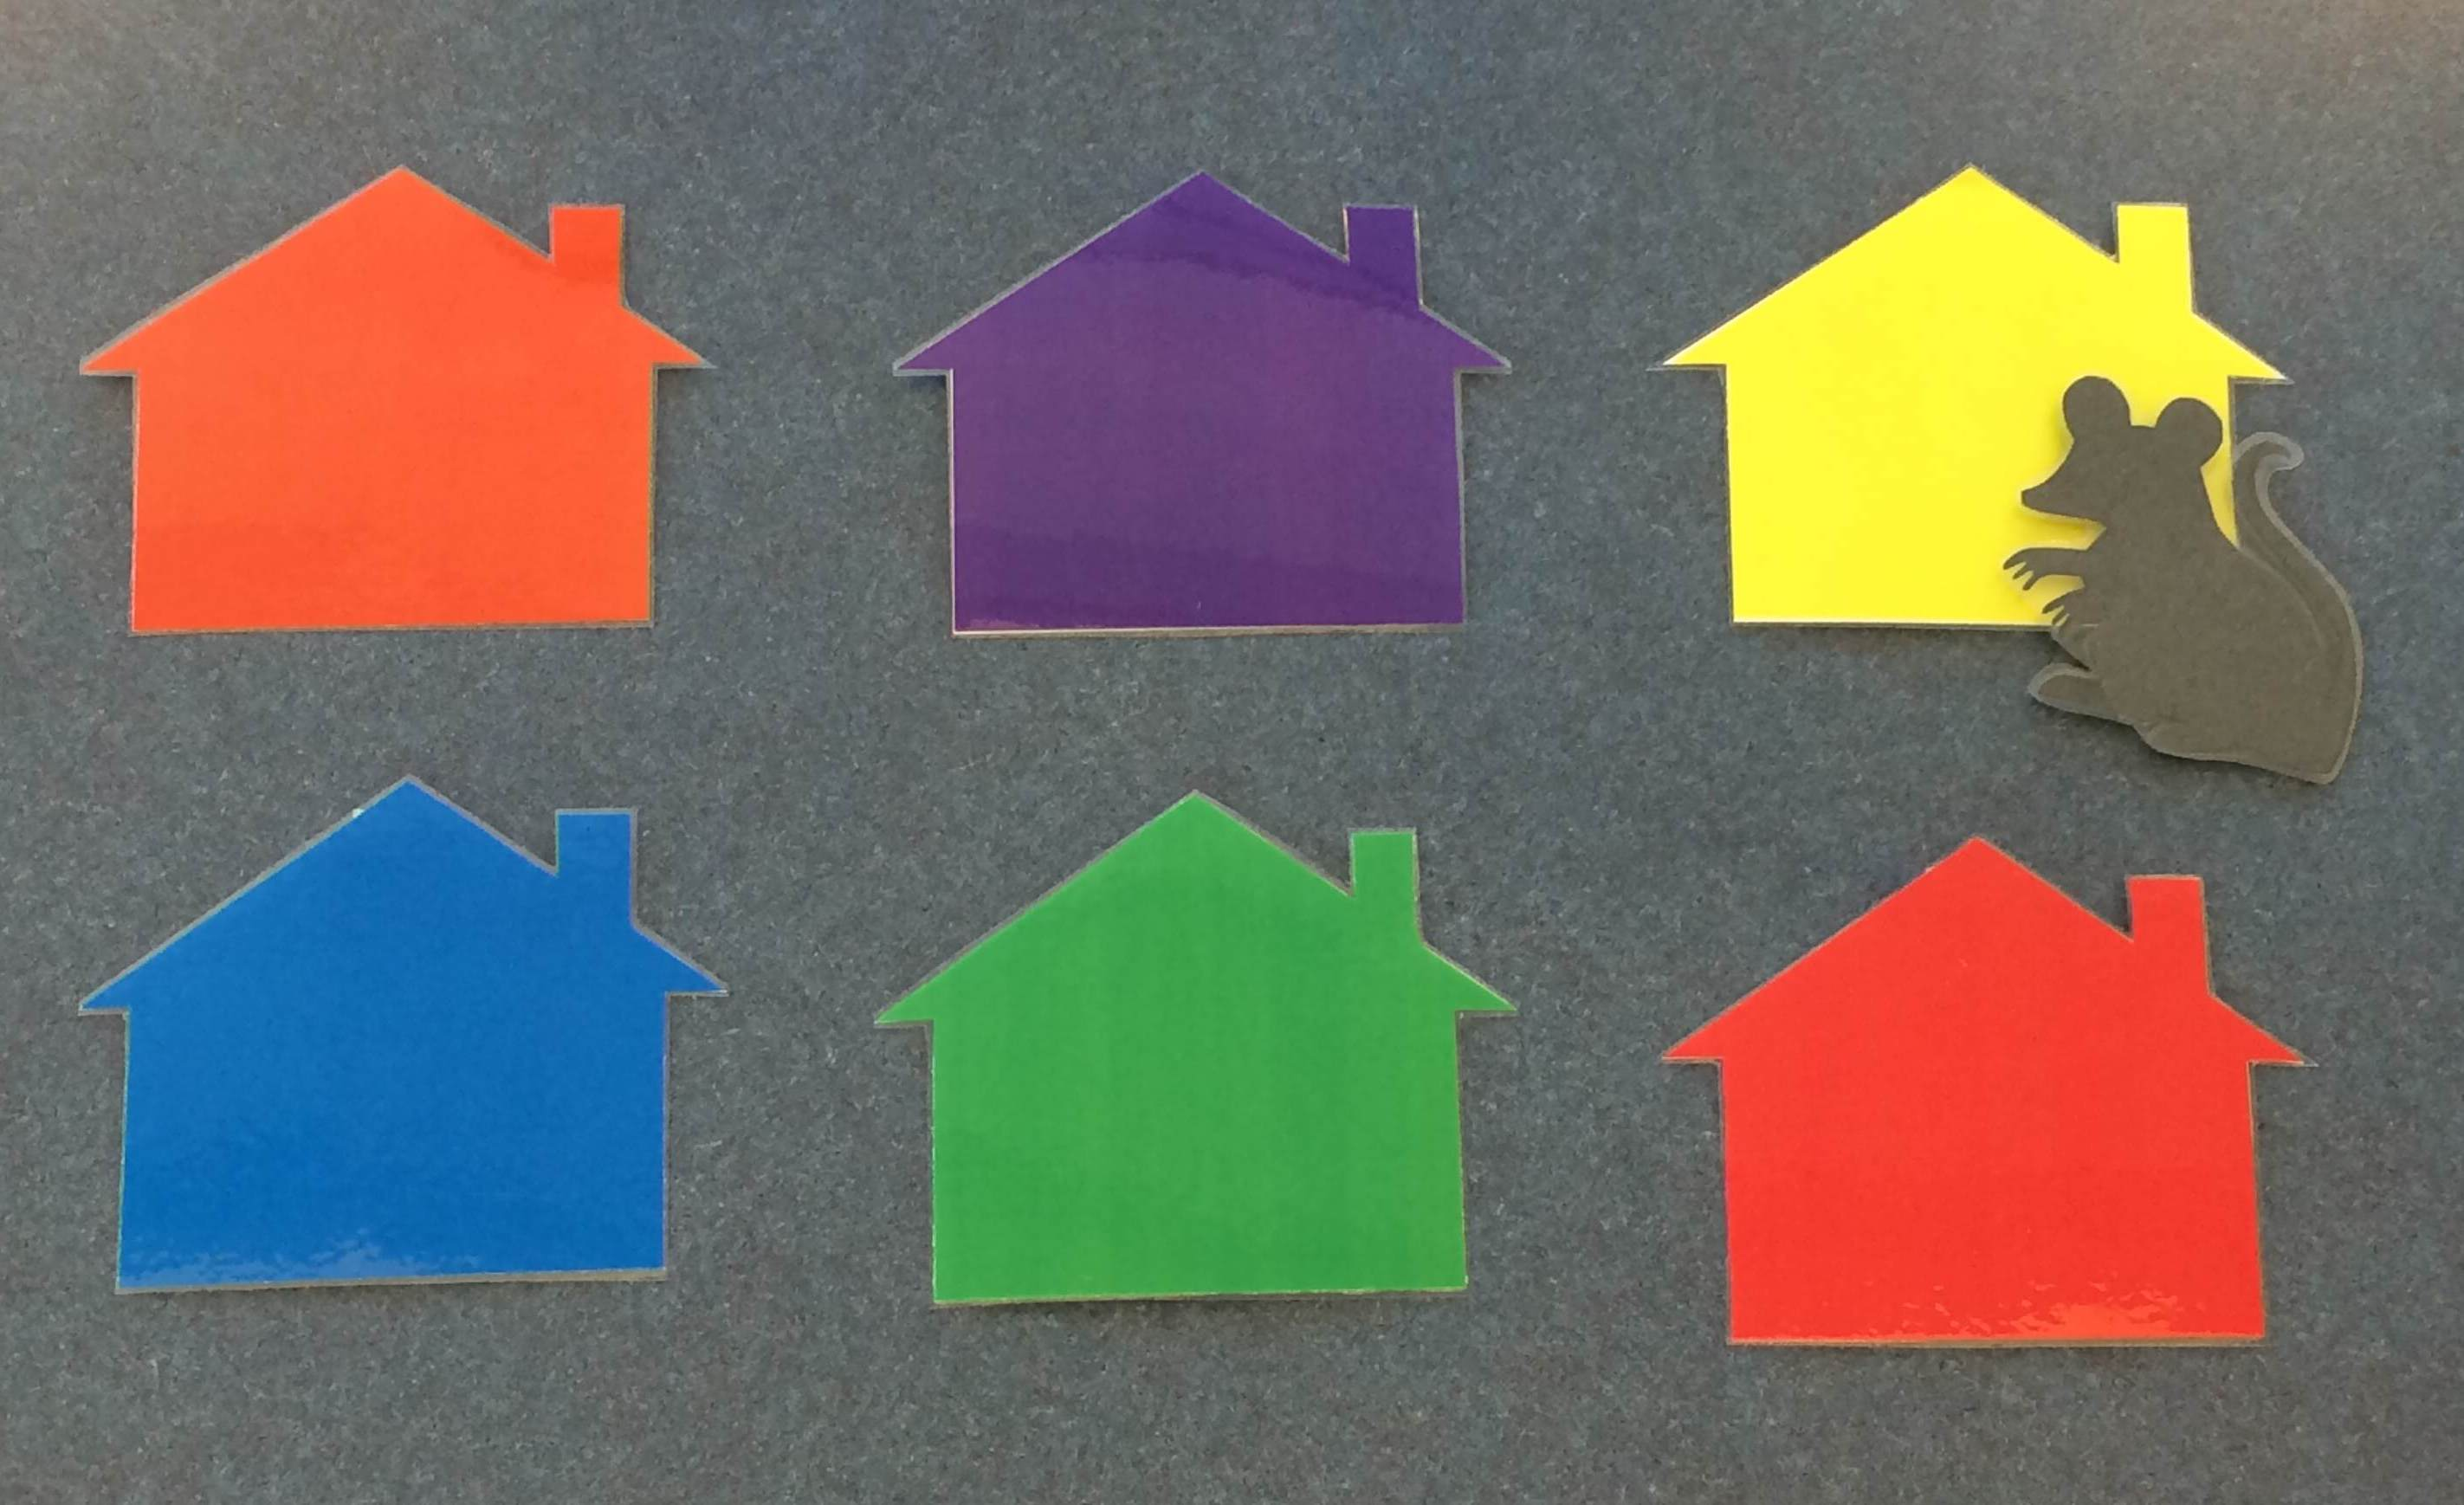 6 different colored houses and 1 mouse